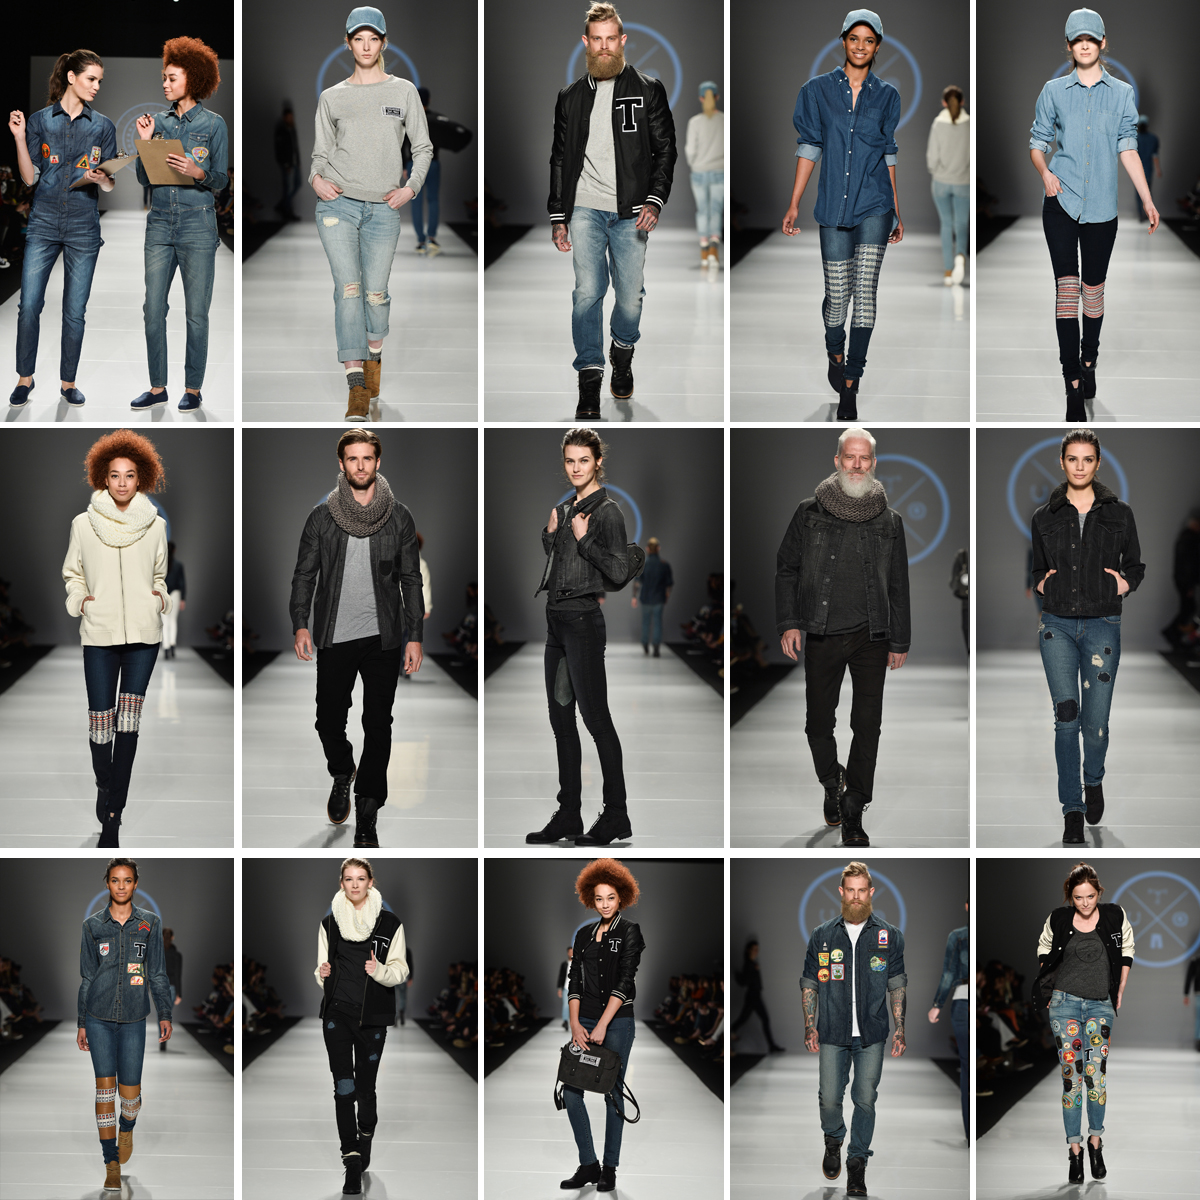 triarchy fall winter 2015 world mastercard fashion week toronto fashion week 01